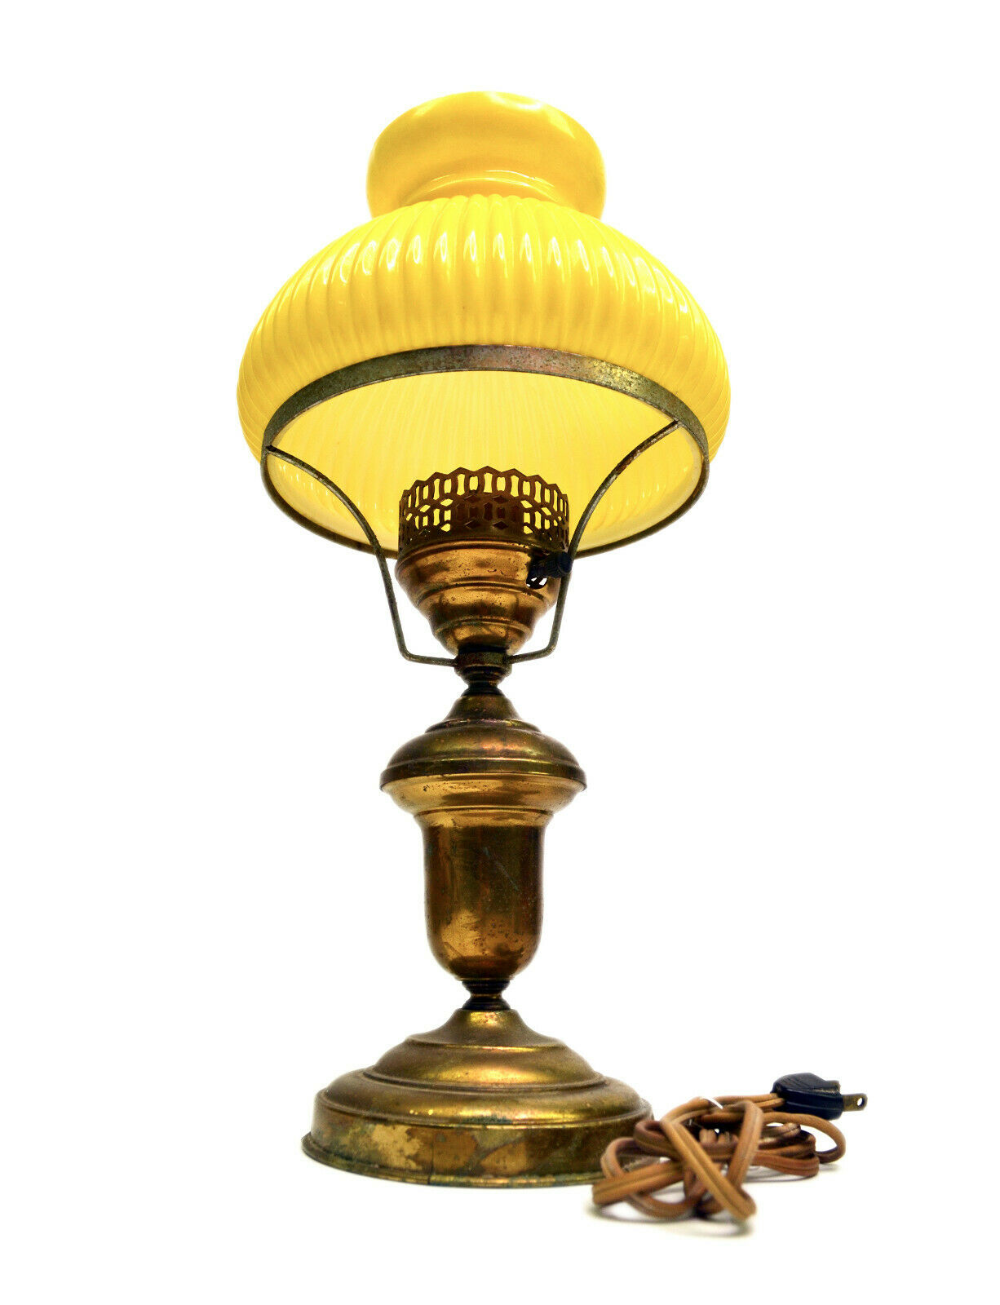 Antique Yellow Glass Shade Brass Desk Parlor Lamp Original Ribbed Victorian 16 Ebay In 2020 Antique Lamp Shades Glass Shades Lamp